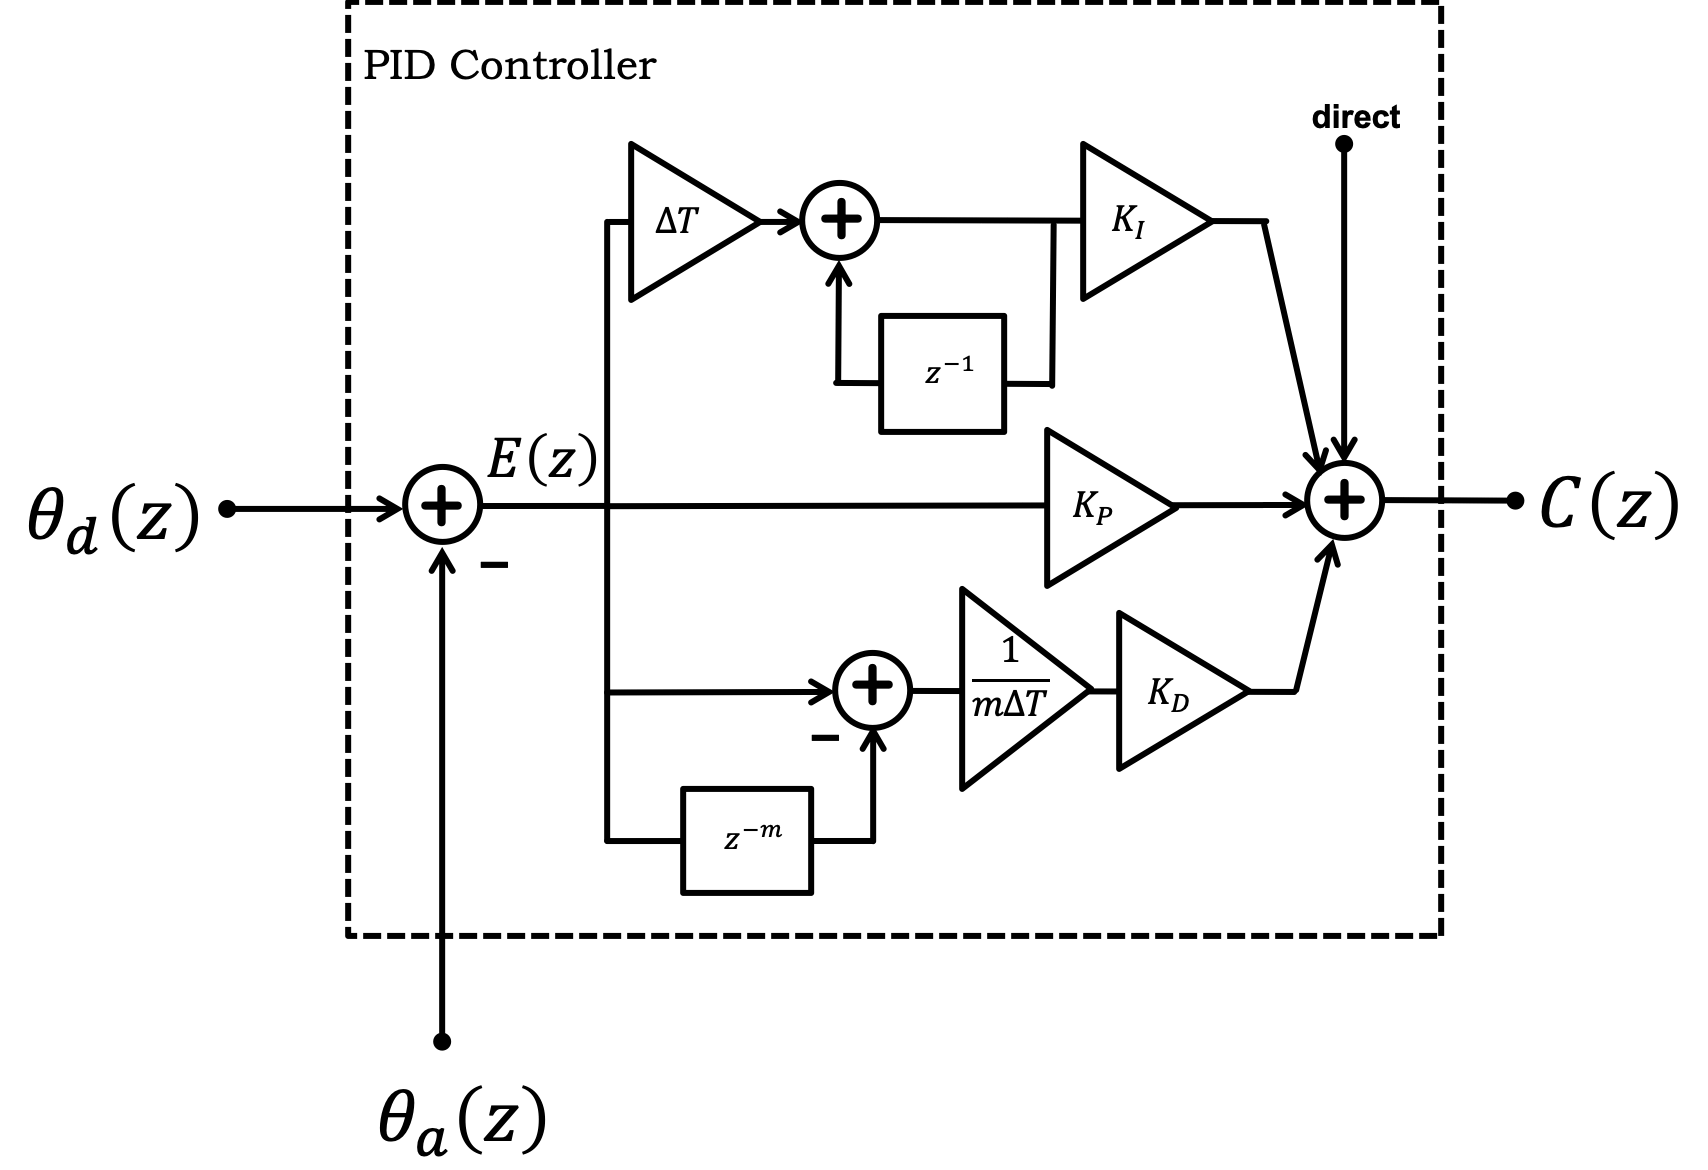 hight resolution of block diagram of pid controller or rather psd controller in the z transform domain note the sum term is generated at the top of the figure